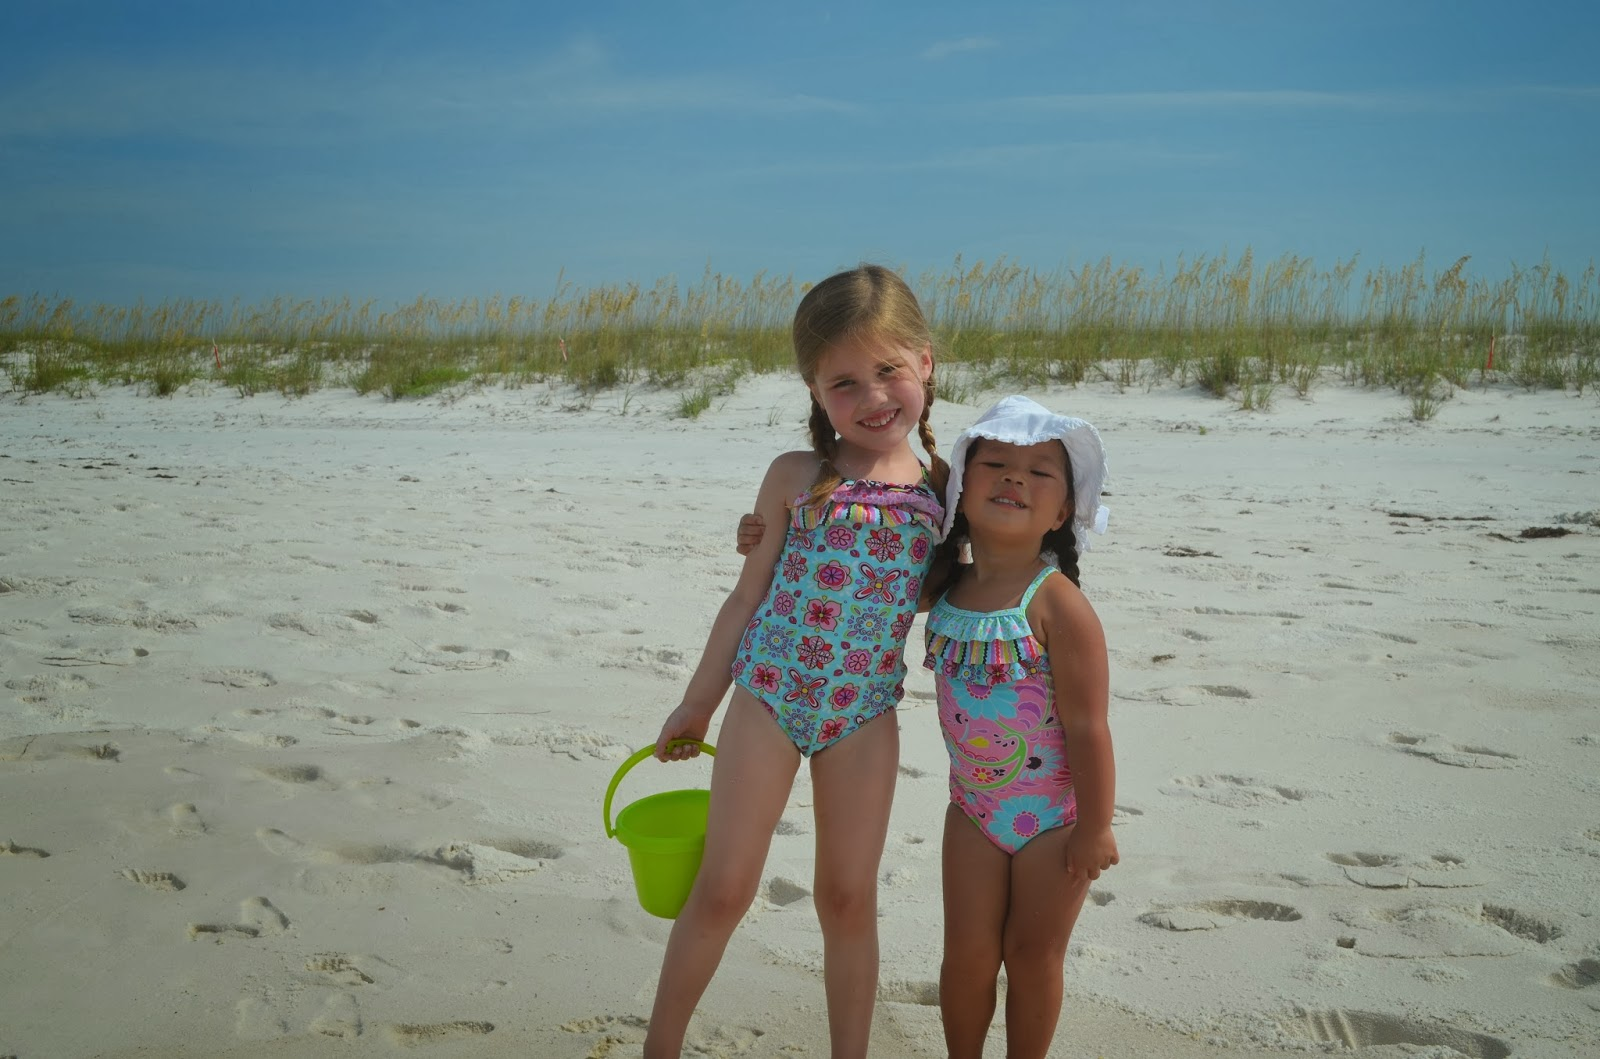 We Had A Wonderful Time Of Our First Family Beach Trip The S Loved Sand Ocean And Pool What Special Week Spending With Just Little